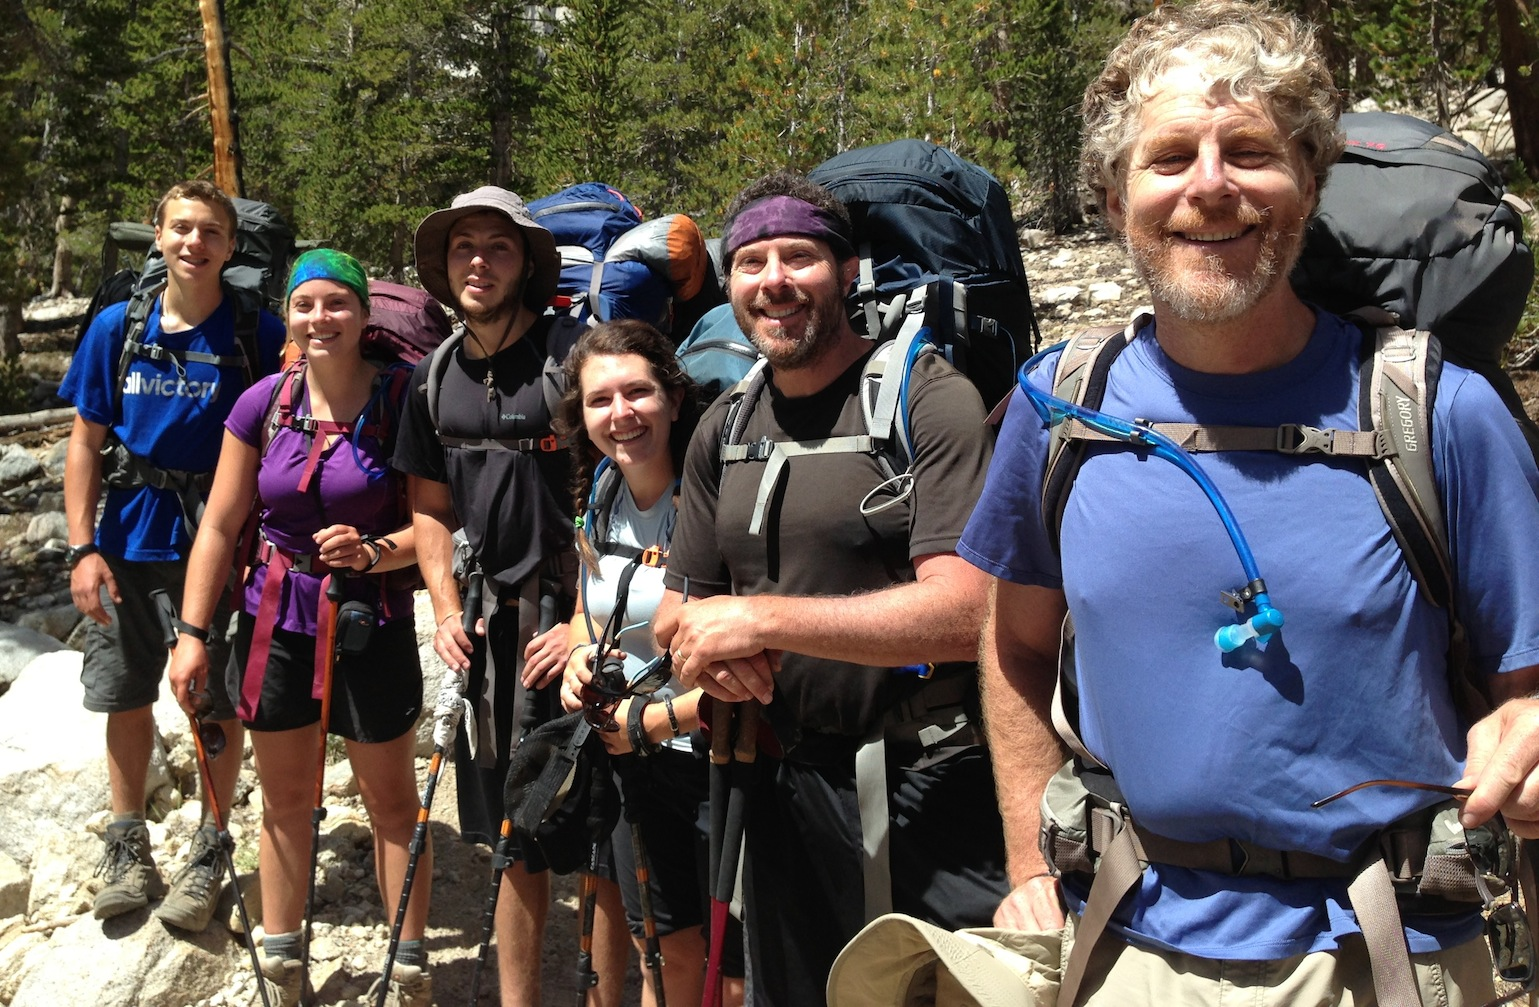 JMT hikers Scrappy, Murder, Bodangles, Tangles, Dr. Beans and Steve on the way back over Kearsarge Pass on Aug. 19 on their way to Mt. Whitney.